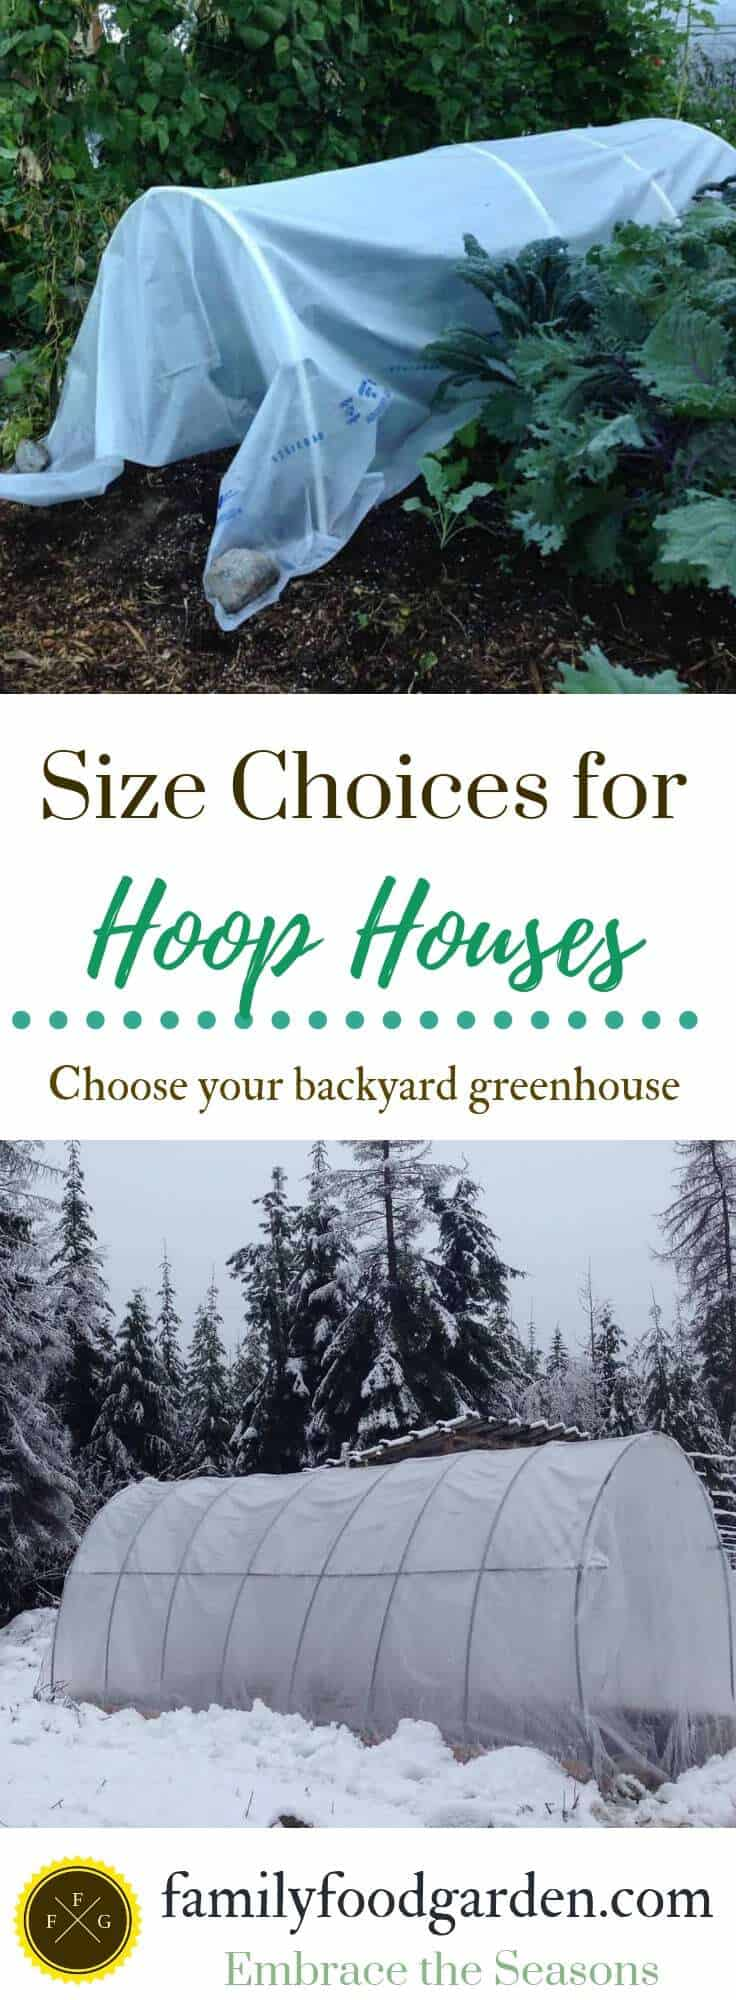 Hoophouse size options for the backyard greenhouse